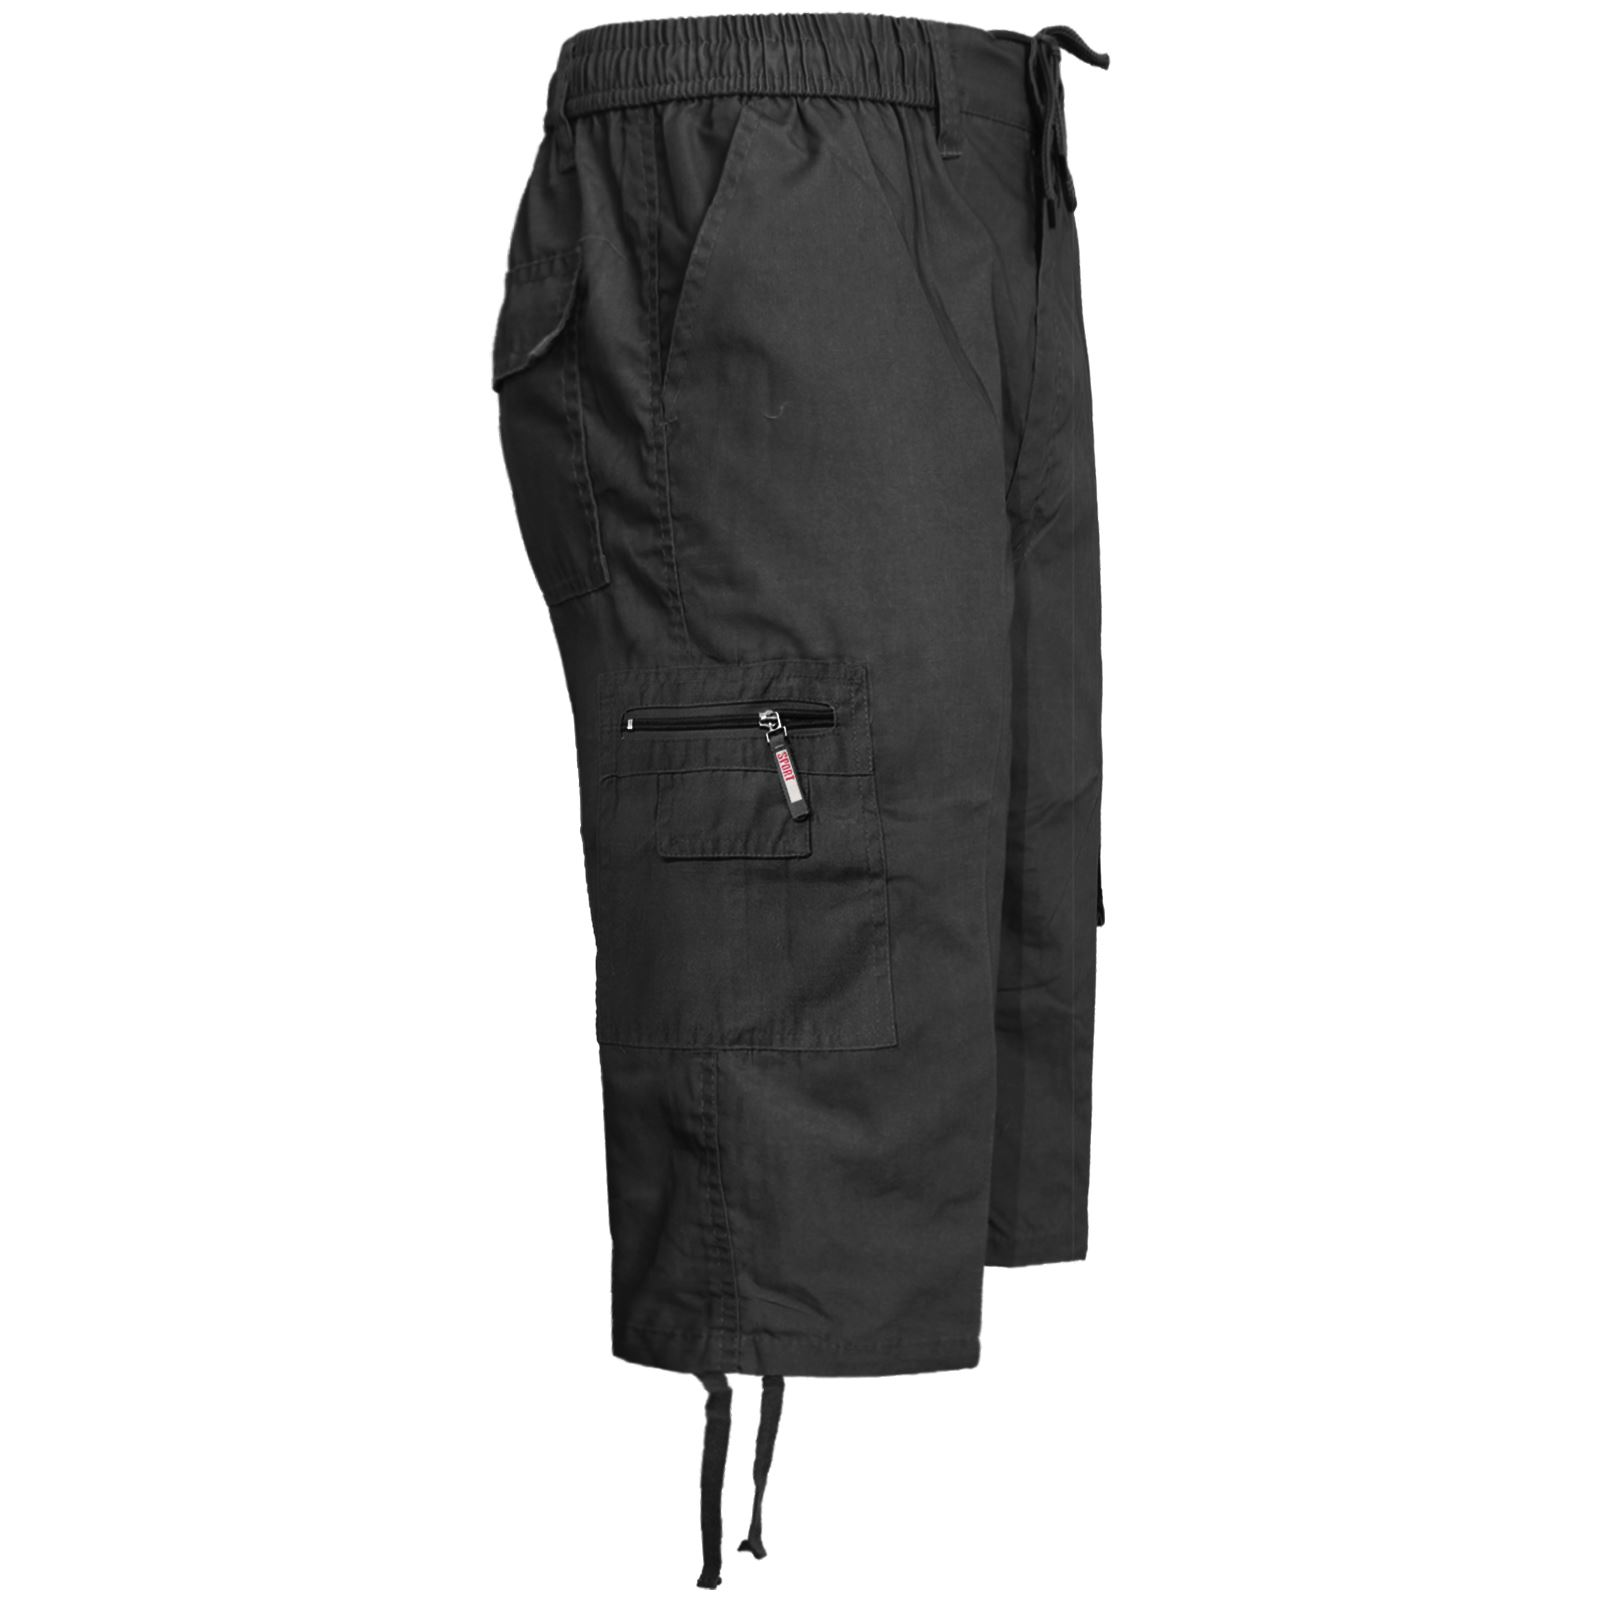 MENS-ELASTICATED-KNEE-LENGTH-OR-3-4-SHORTS-CARGO-COMBAT-MULTI-POCKET-SUMMER-PANT thumbnail 22